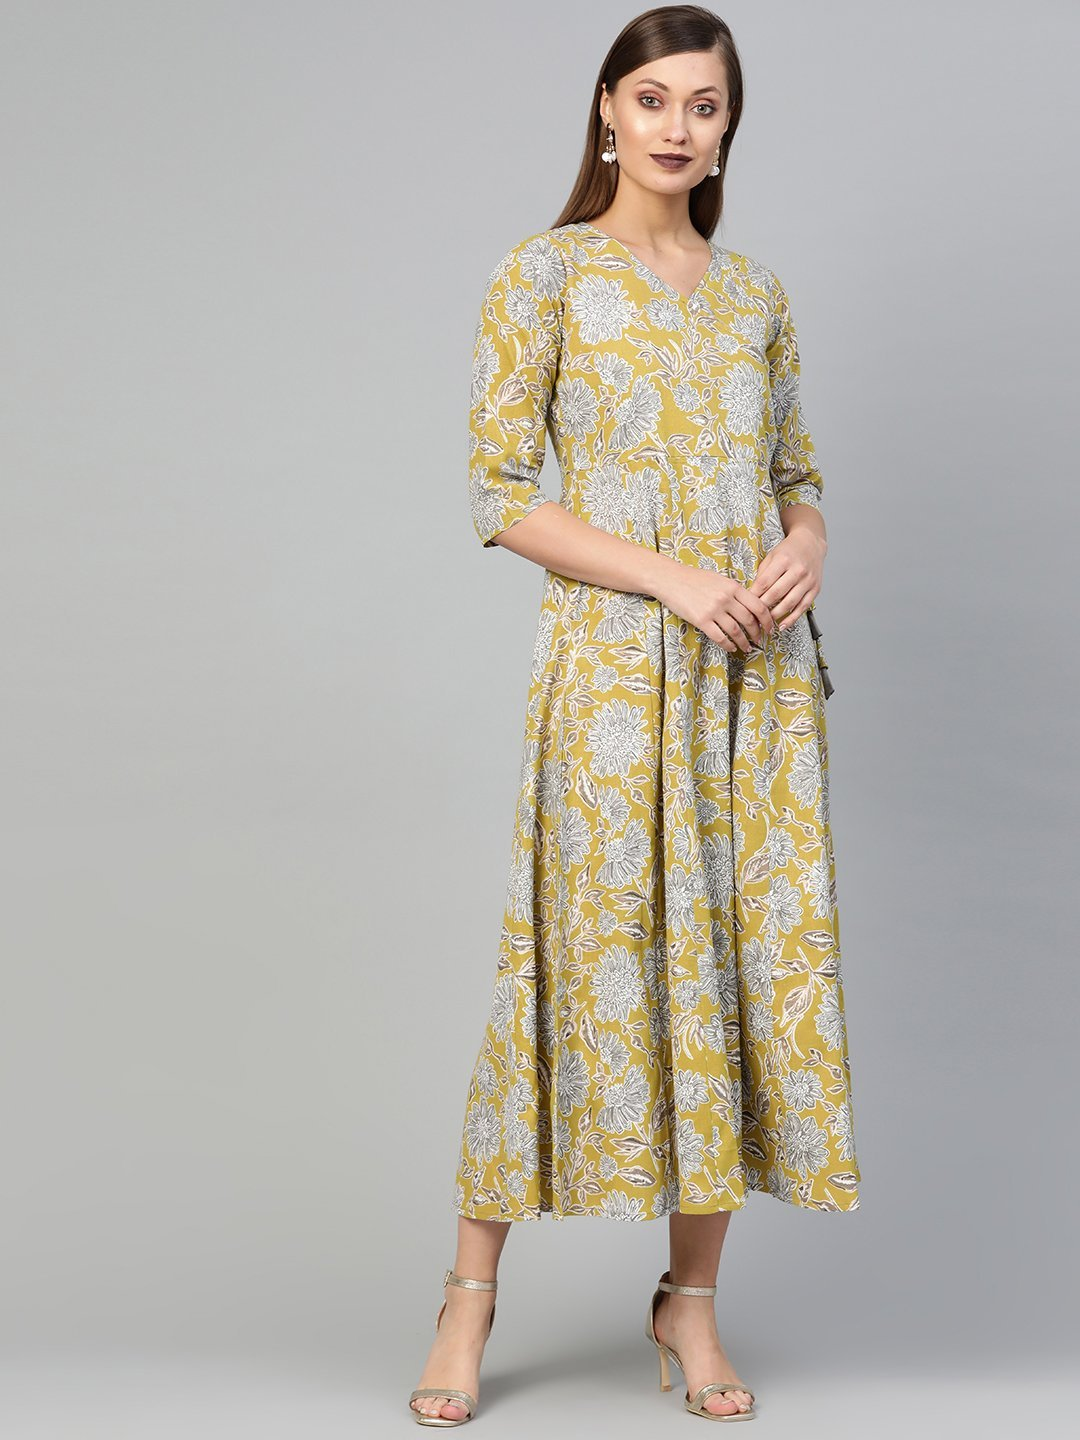 AASI - HOUSE OF NAYO Women Lime Green & Gold Floral Maxi Dress